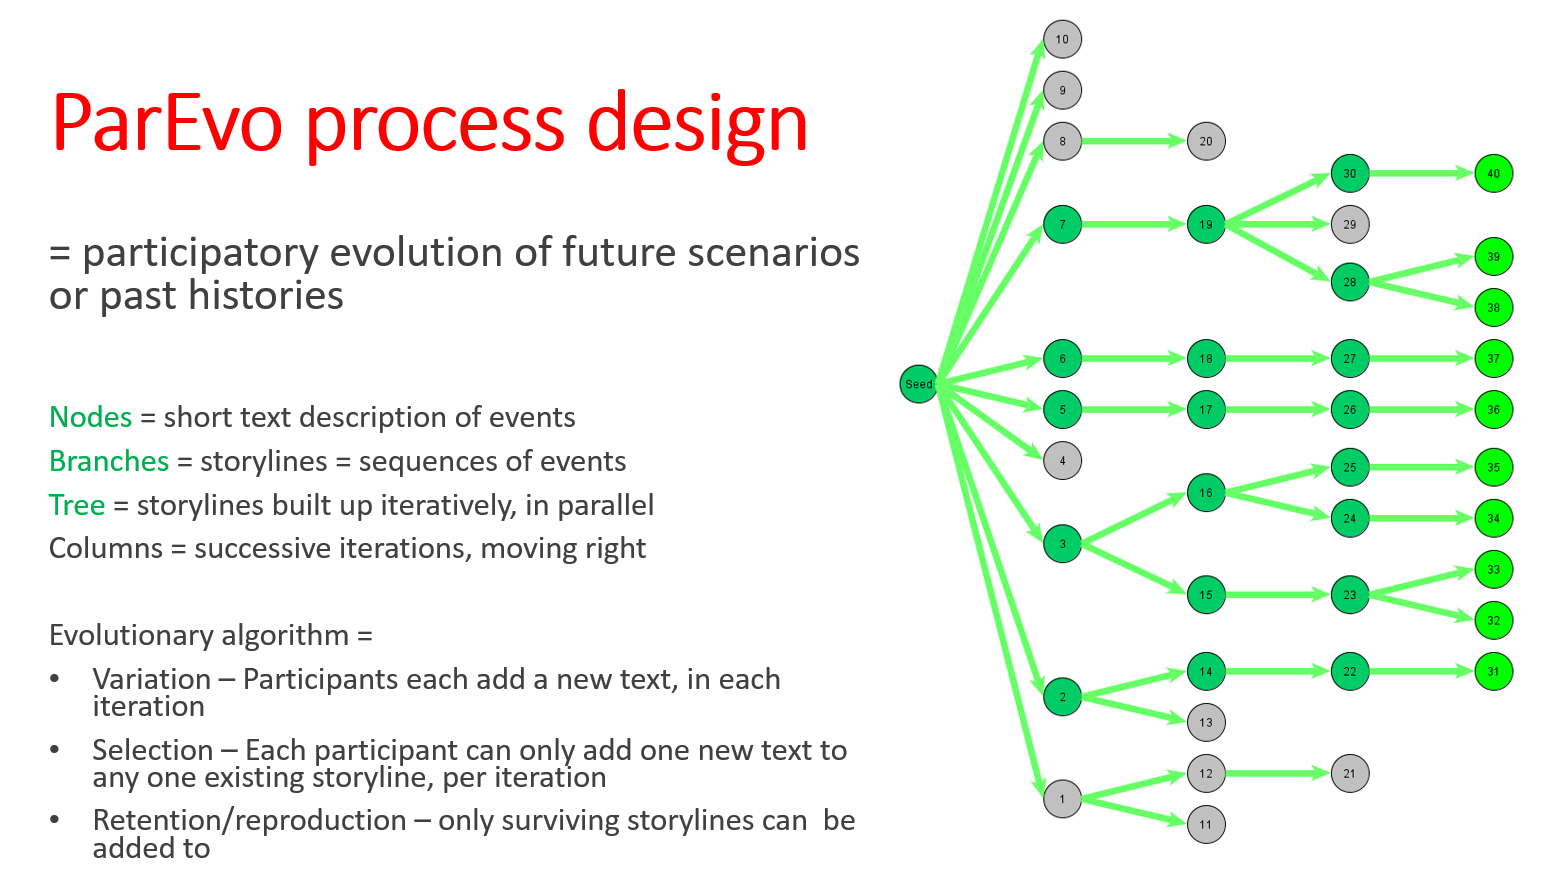 Process design slide 2019 05 29 Vs 2